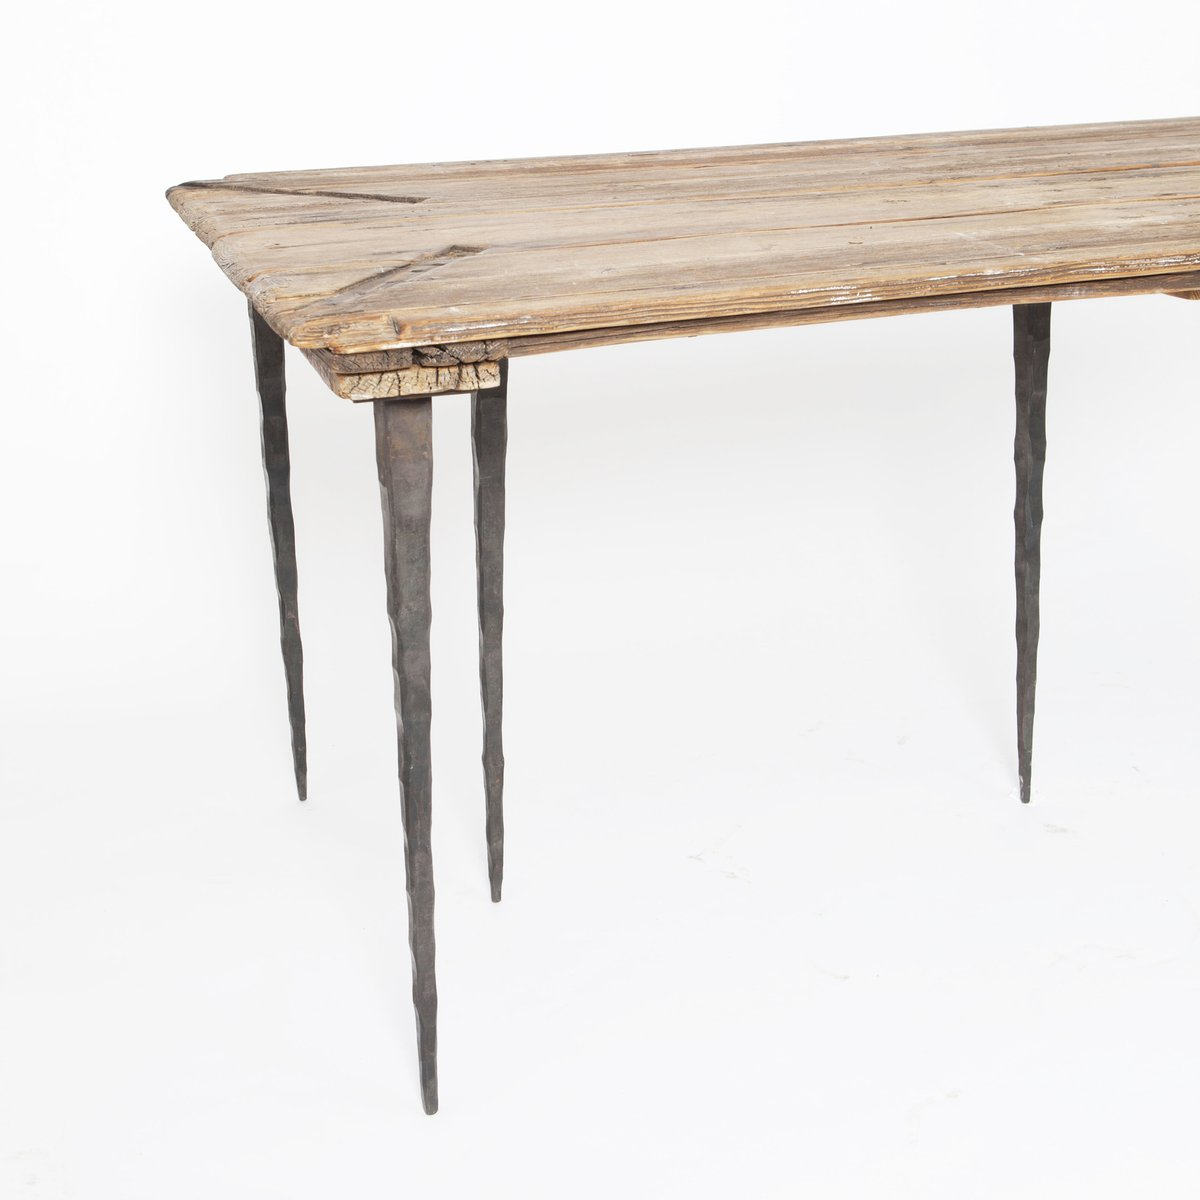 Italian dining table by katrin arens 1989 for sale at pamono for Italian dining table